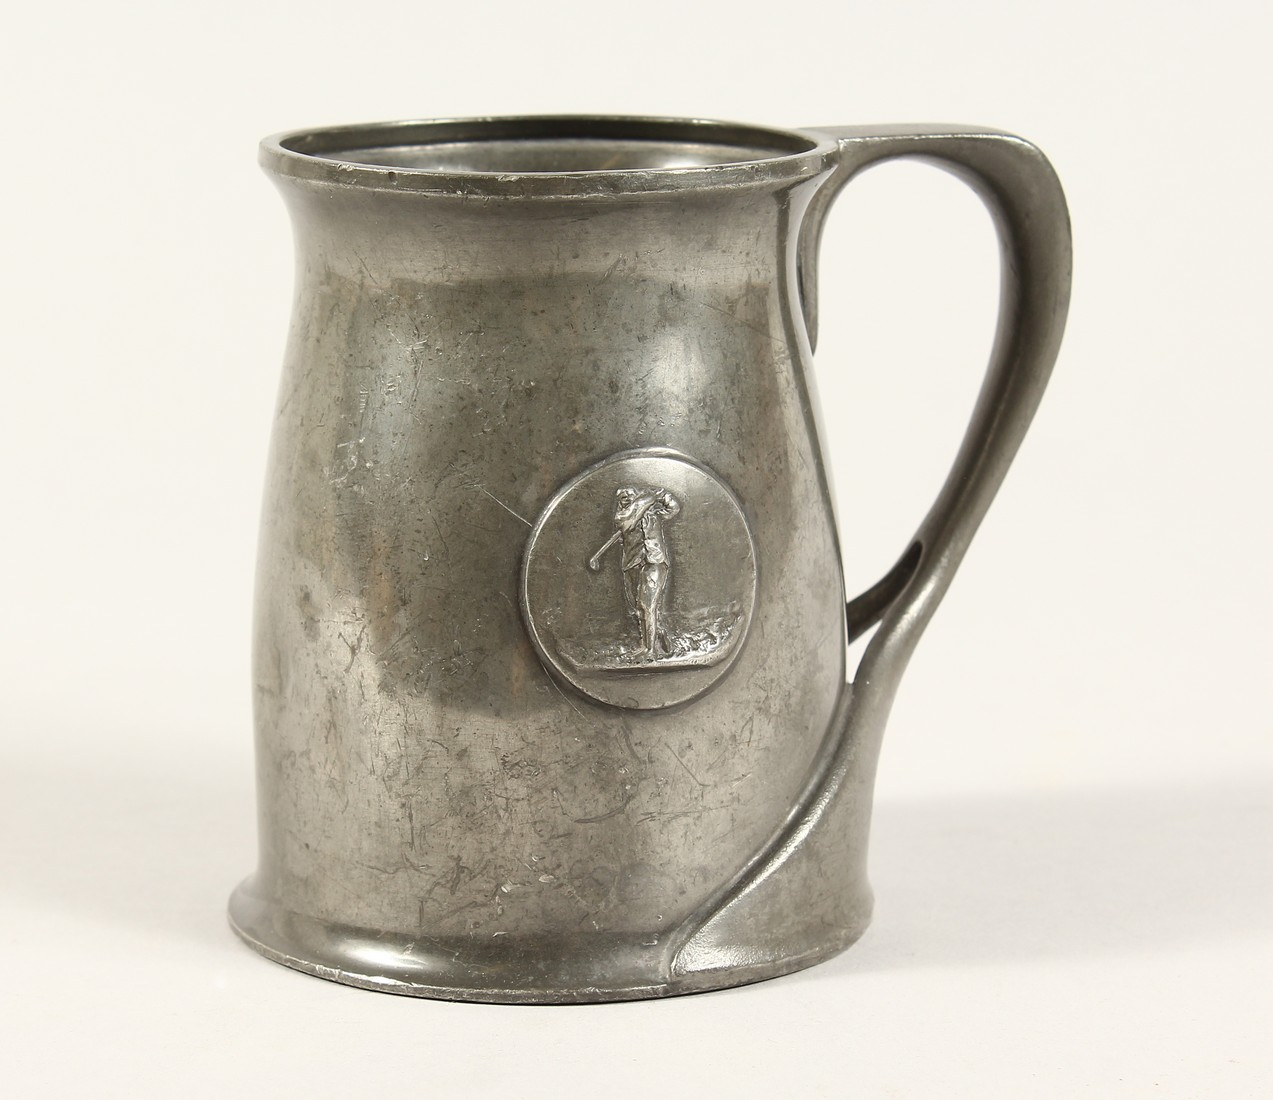 A TUDRIC ARCHIBALD KNOX PEWTER TANKARD with an oval of a golfer No. 066 4.25ins high.